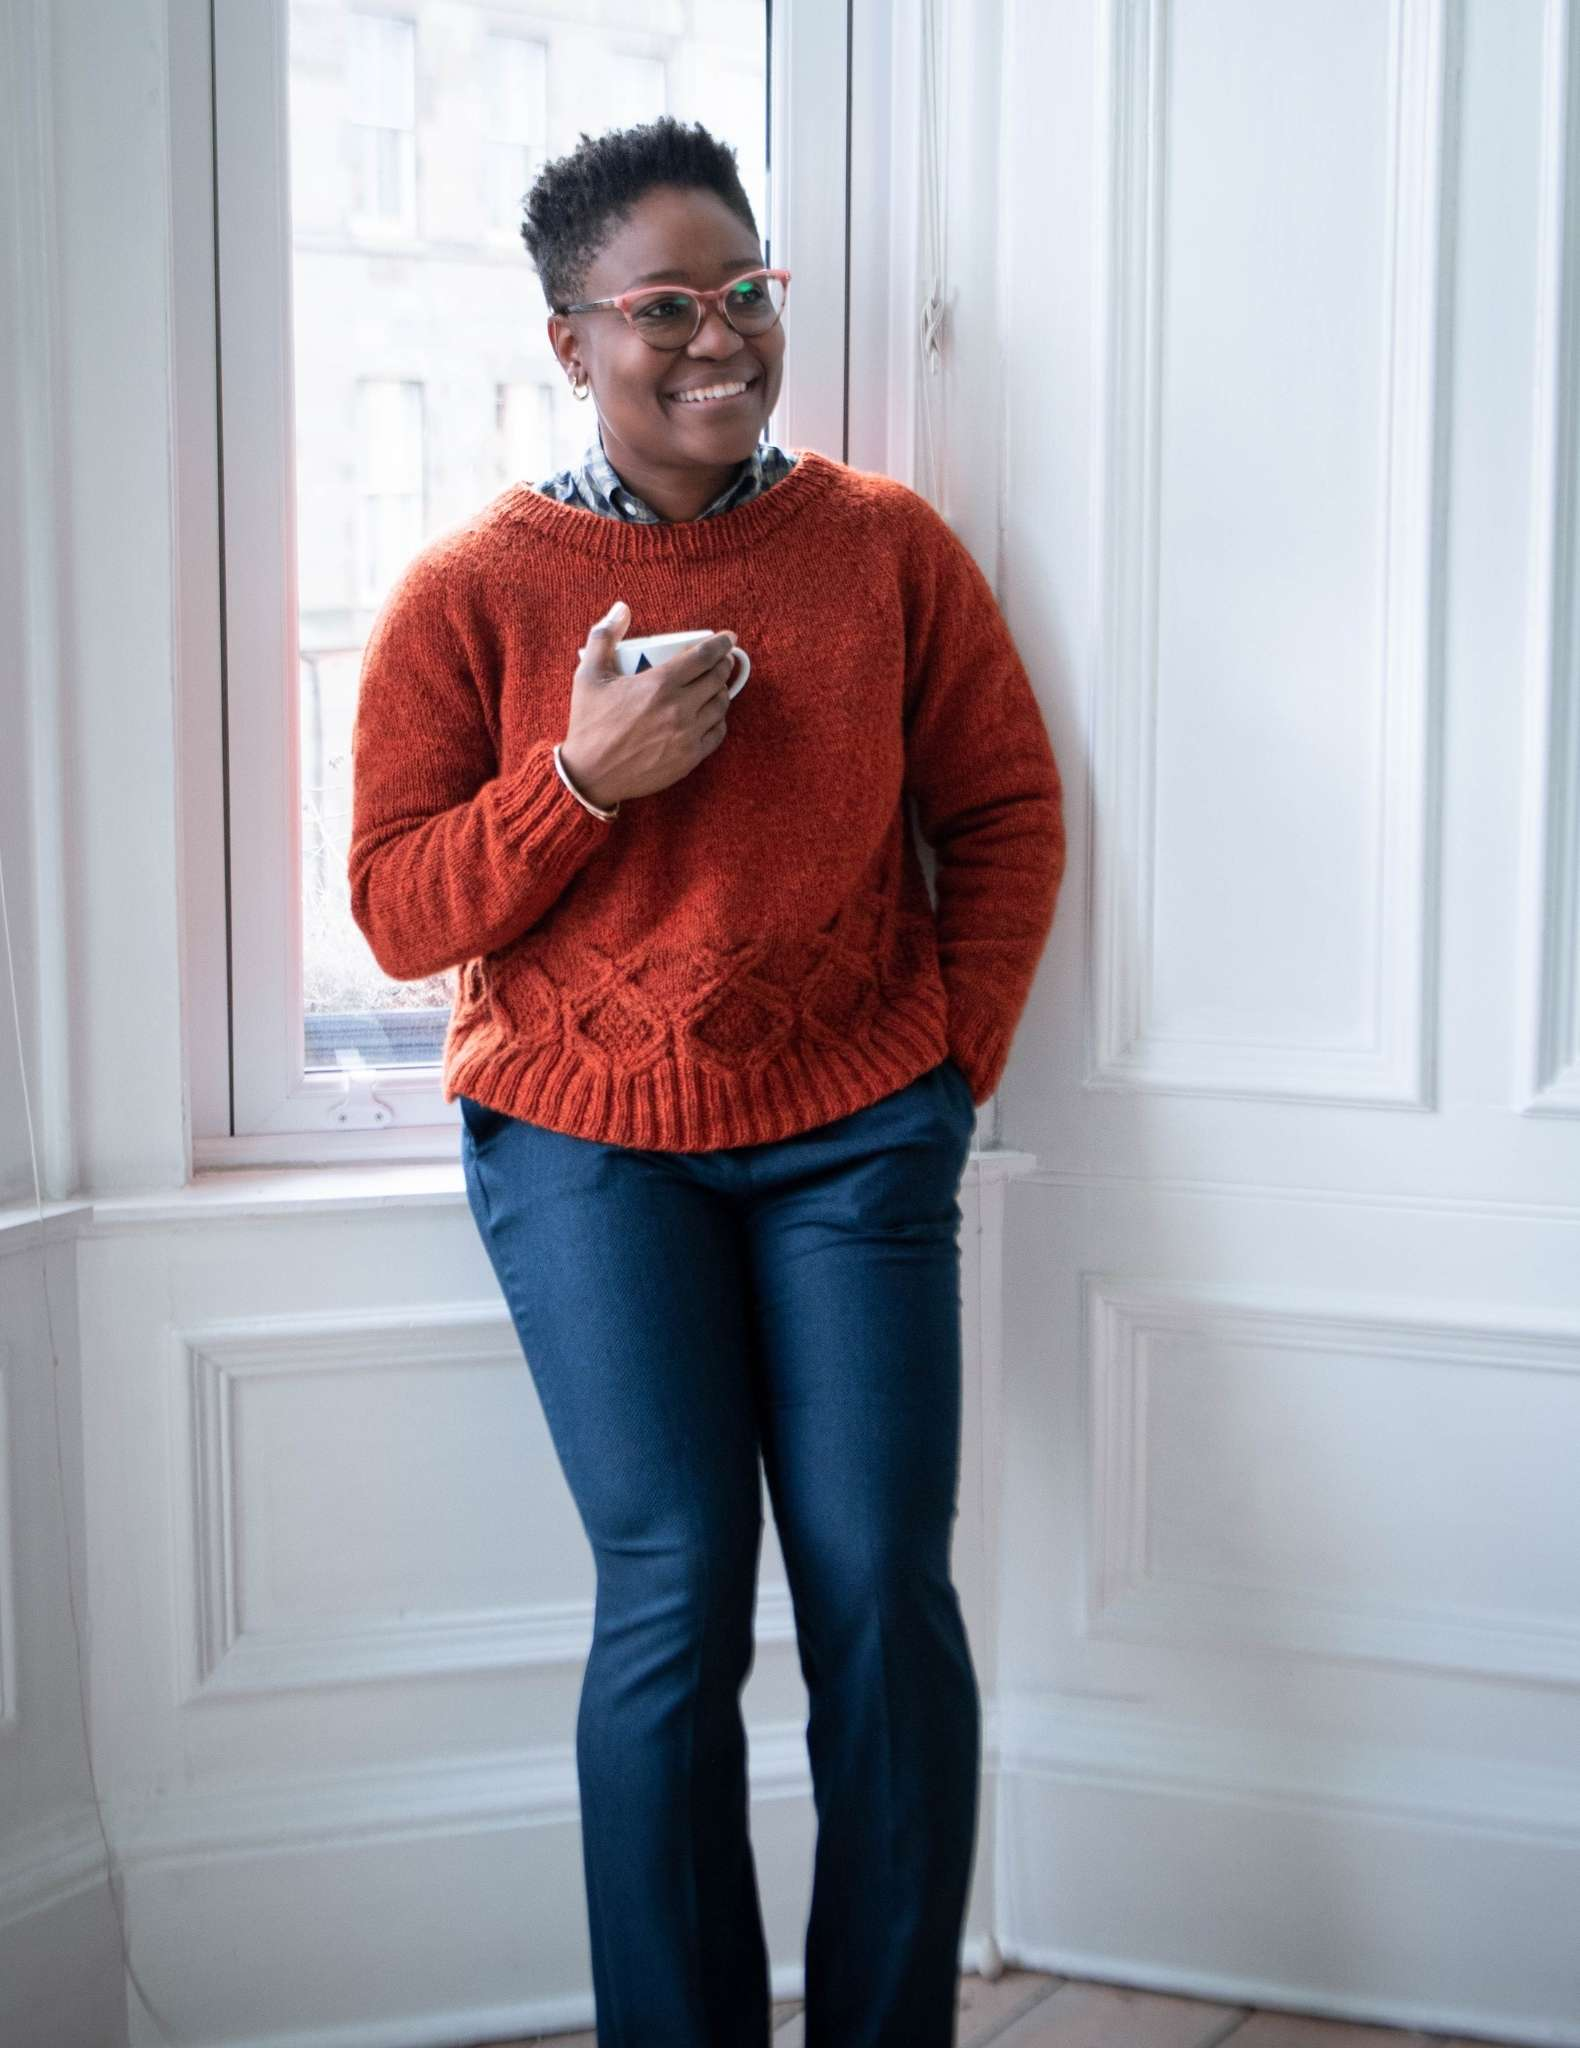 A black woman relaxes against a white indoor wall, wearing an orange cabled sweater and jeans and holding a mug in her right hand.